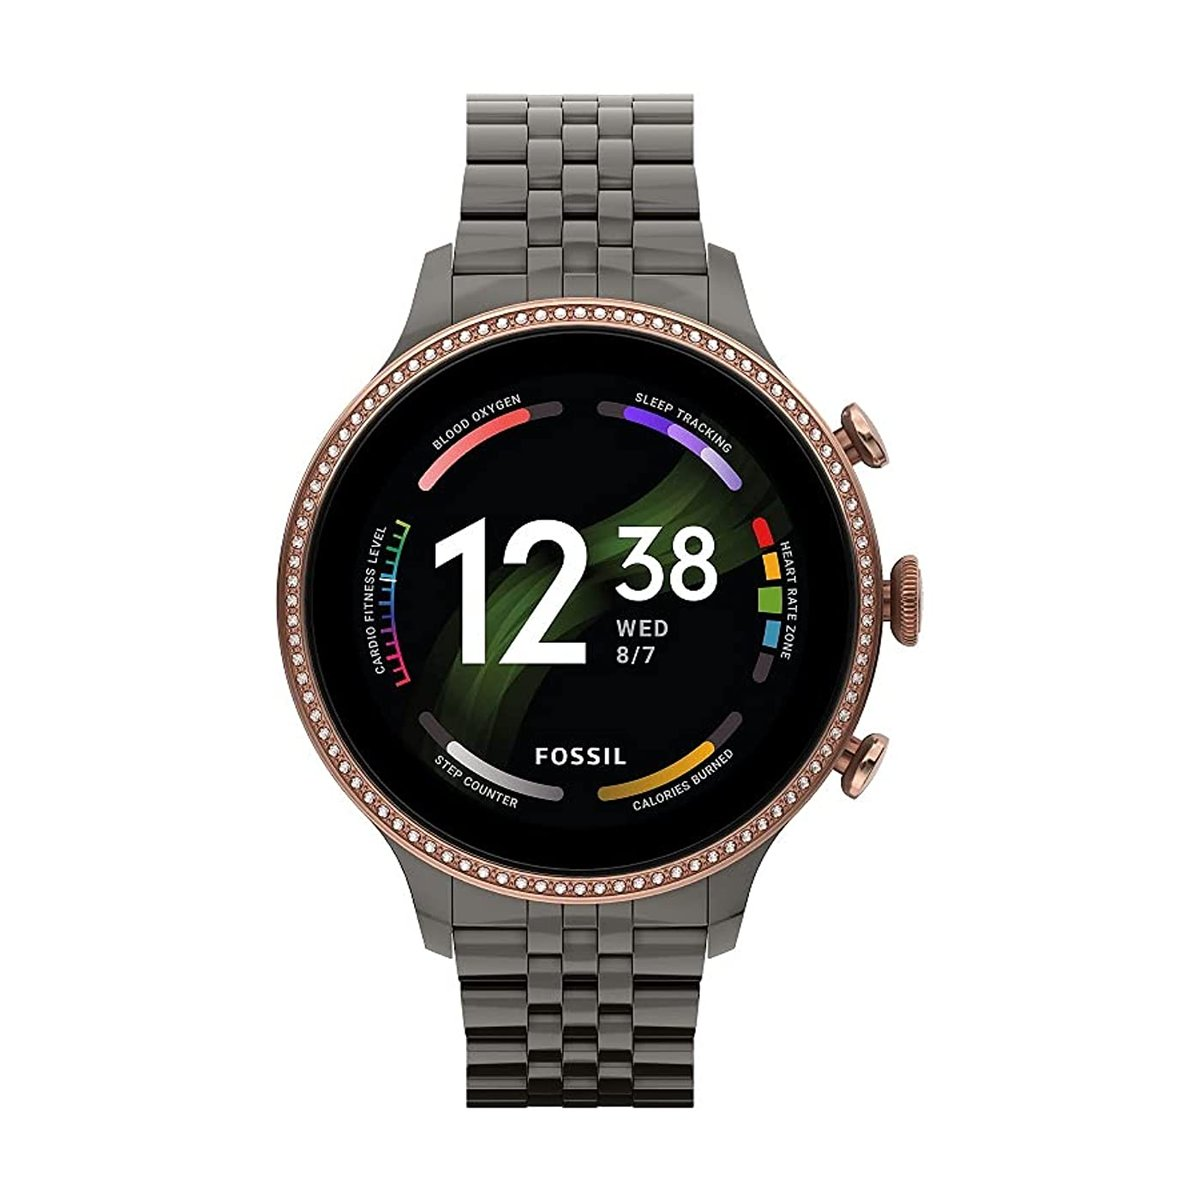 test Twitter Media - #MenDeal #WatchesDeal   See #2 product of Men category, 'Fossil Gen 6 Smartwatch with AMOLED screen, Snapdragon 4100+ Wear platform, Wear OS by Google, Google assistant, SpO2, wellness features and Smartphone Notifications' at just ₹23995!!!  See: https://t.co/MZkkUAL6GL https://t.co/A8HnrtbgjO